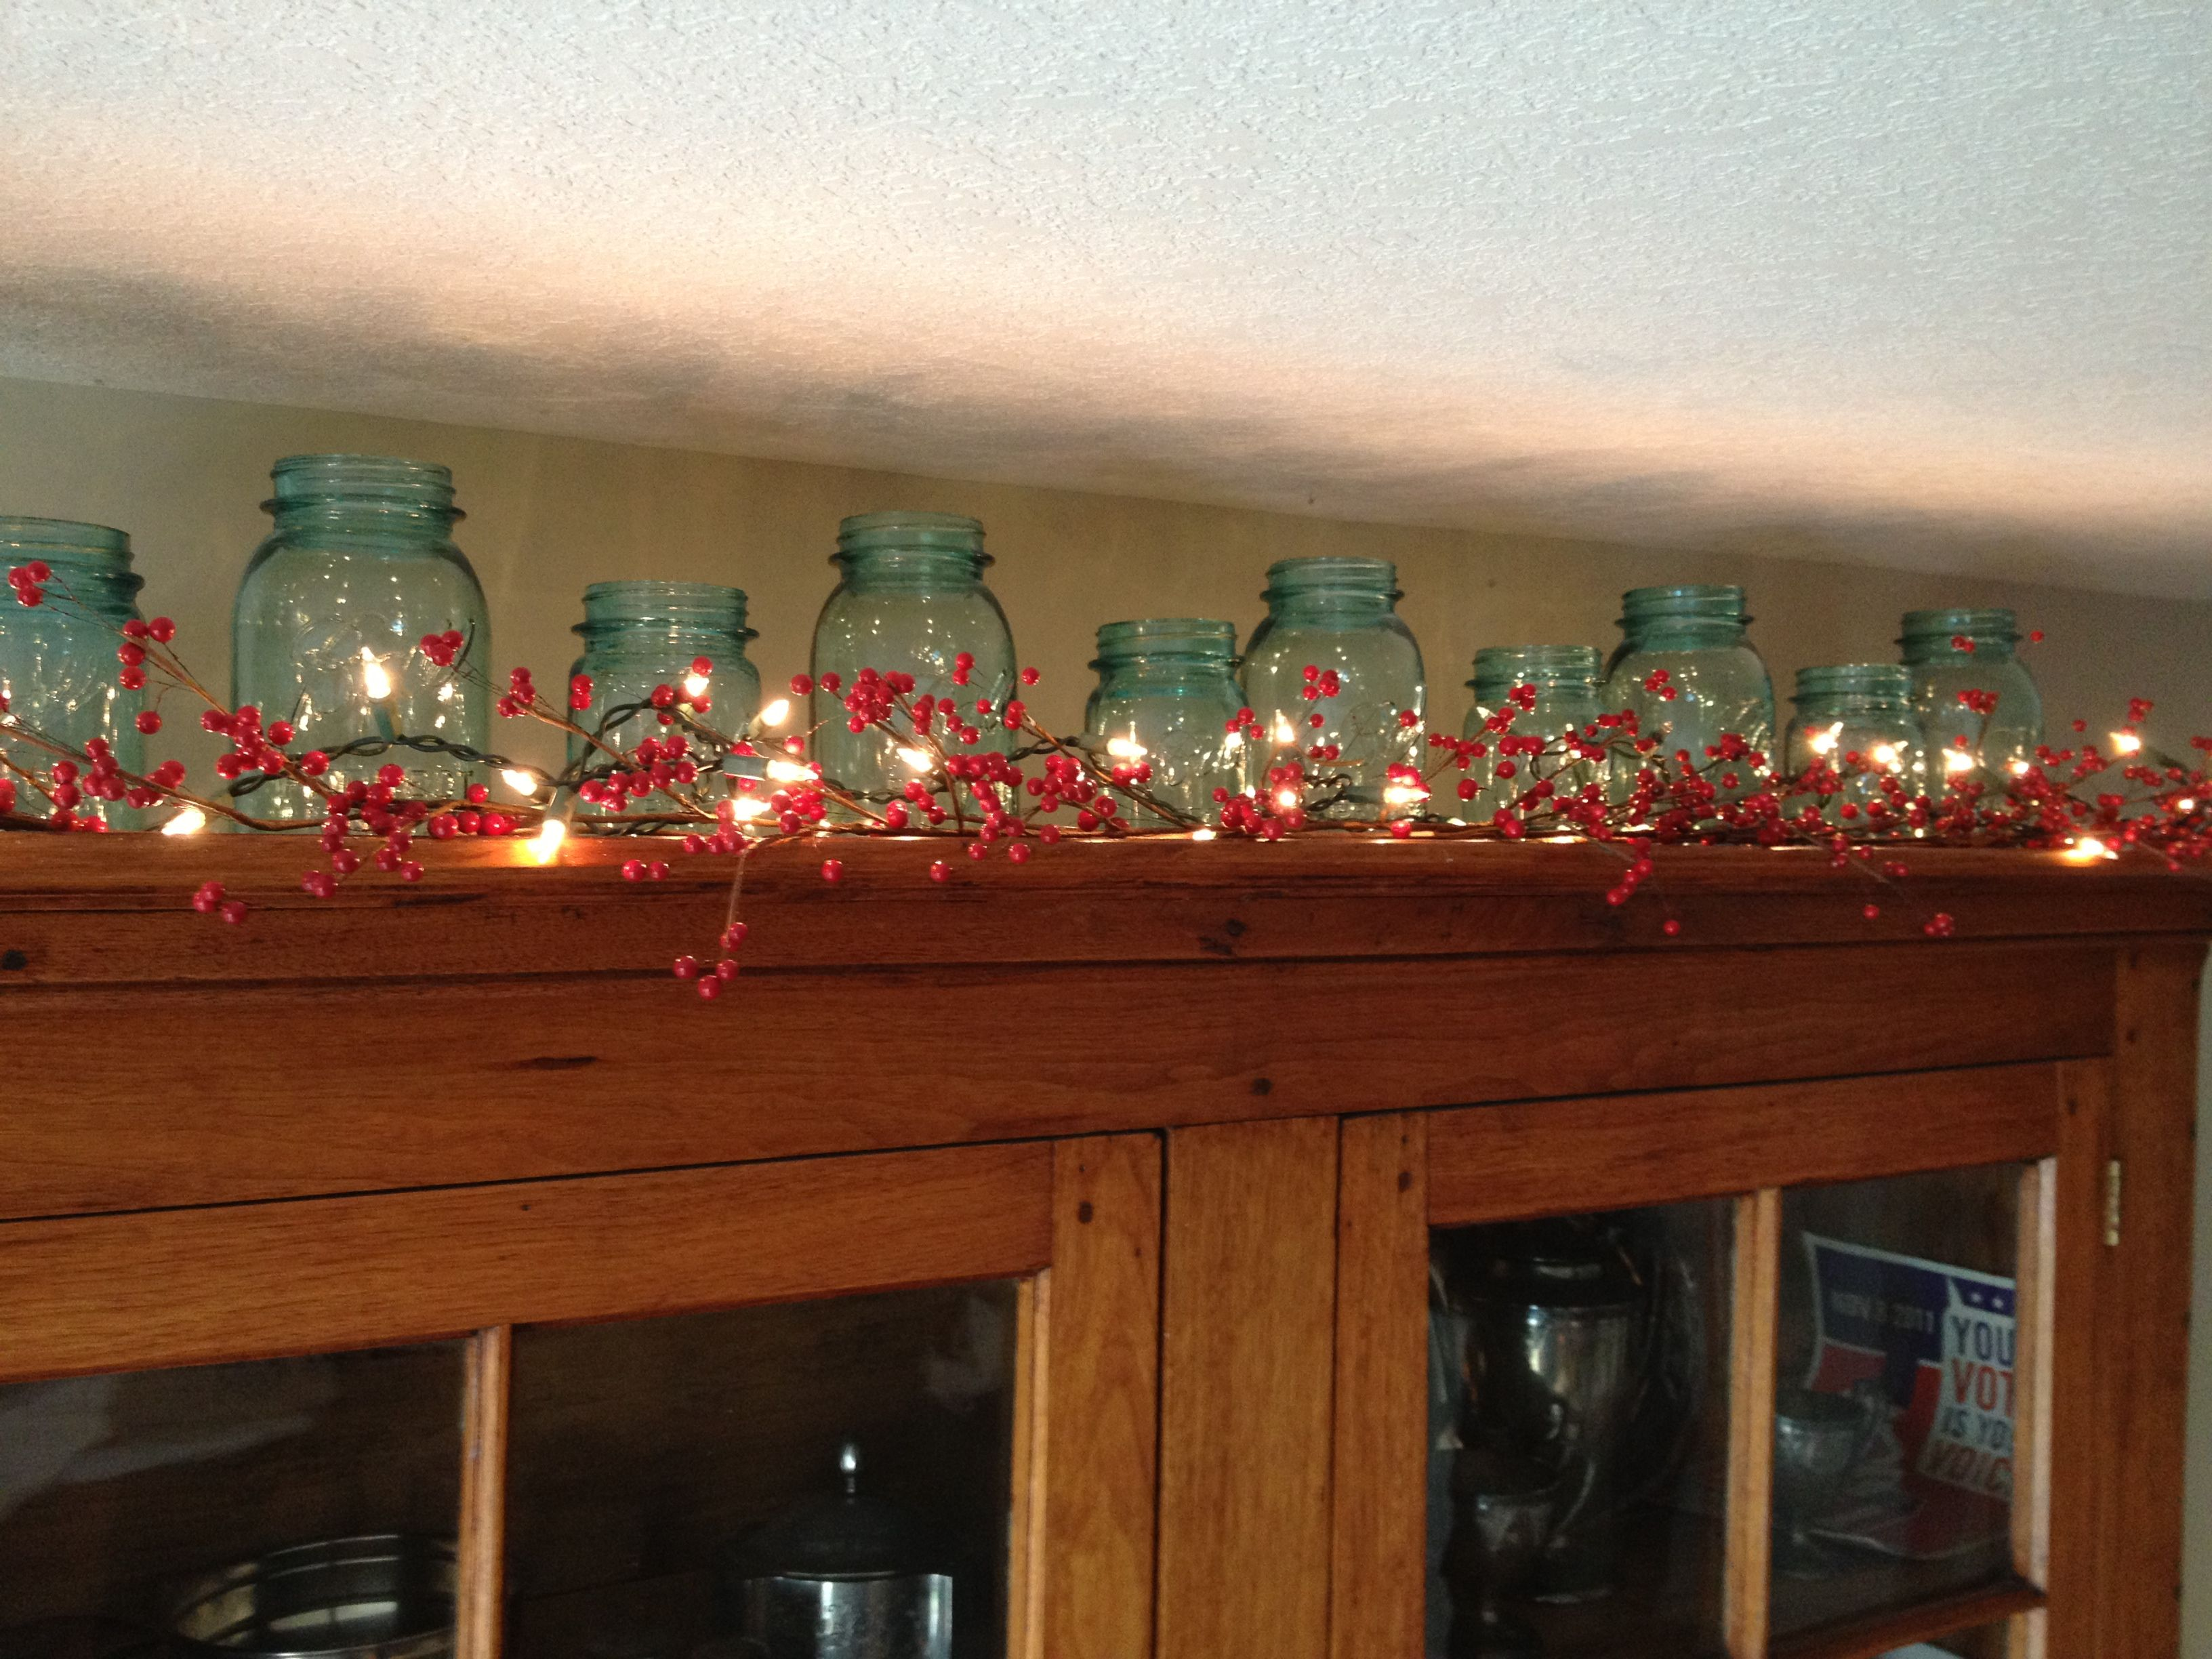 Lights Above Kitchen Cabinets Deocrating With Mason Jars Decorating With Mason Jars